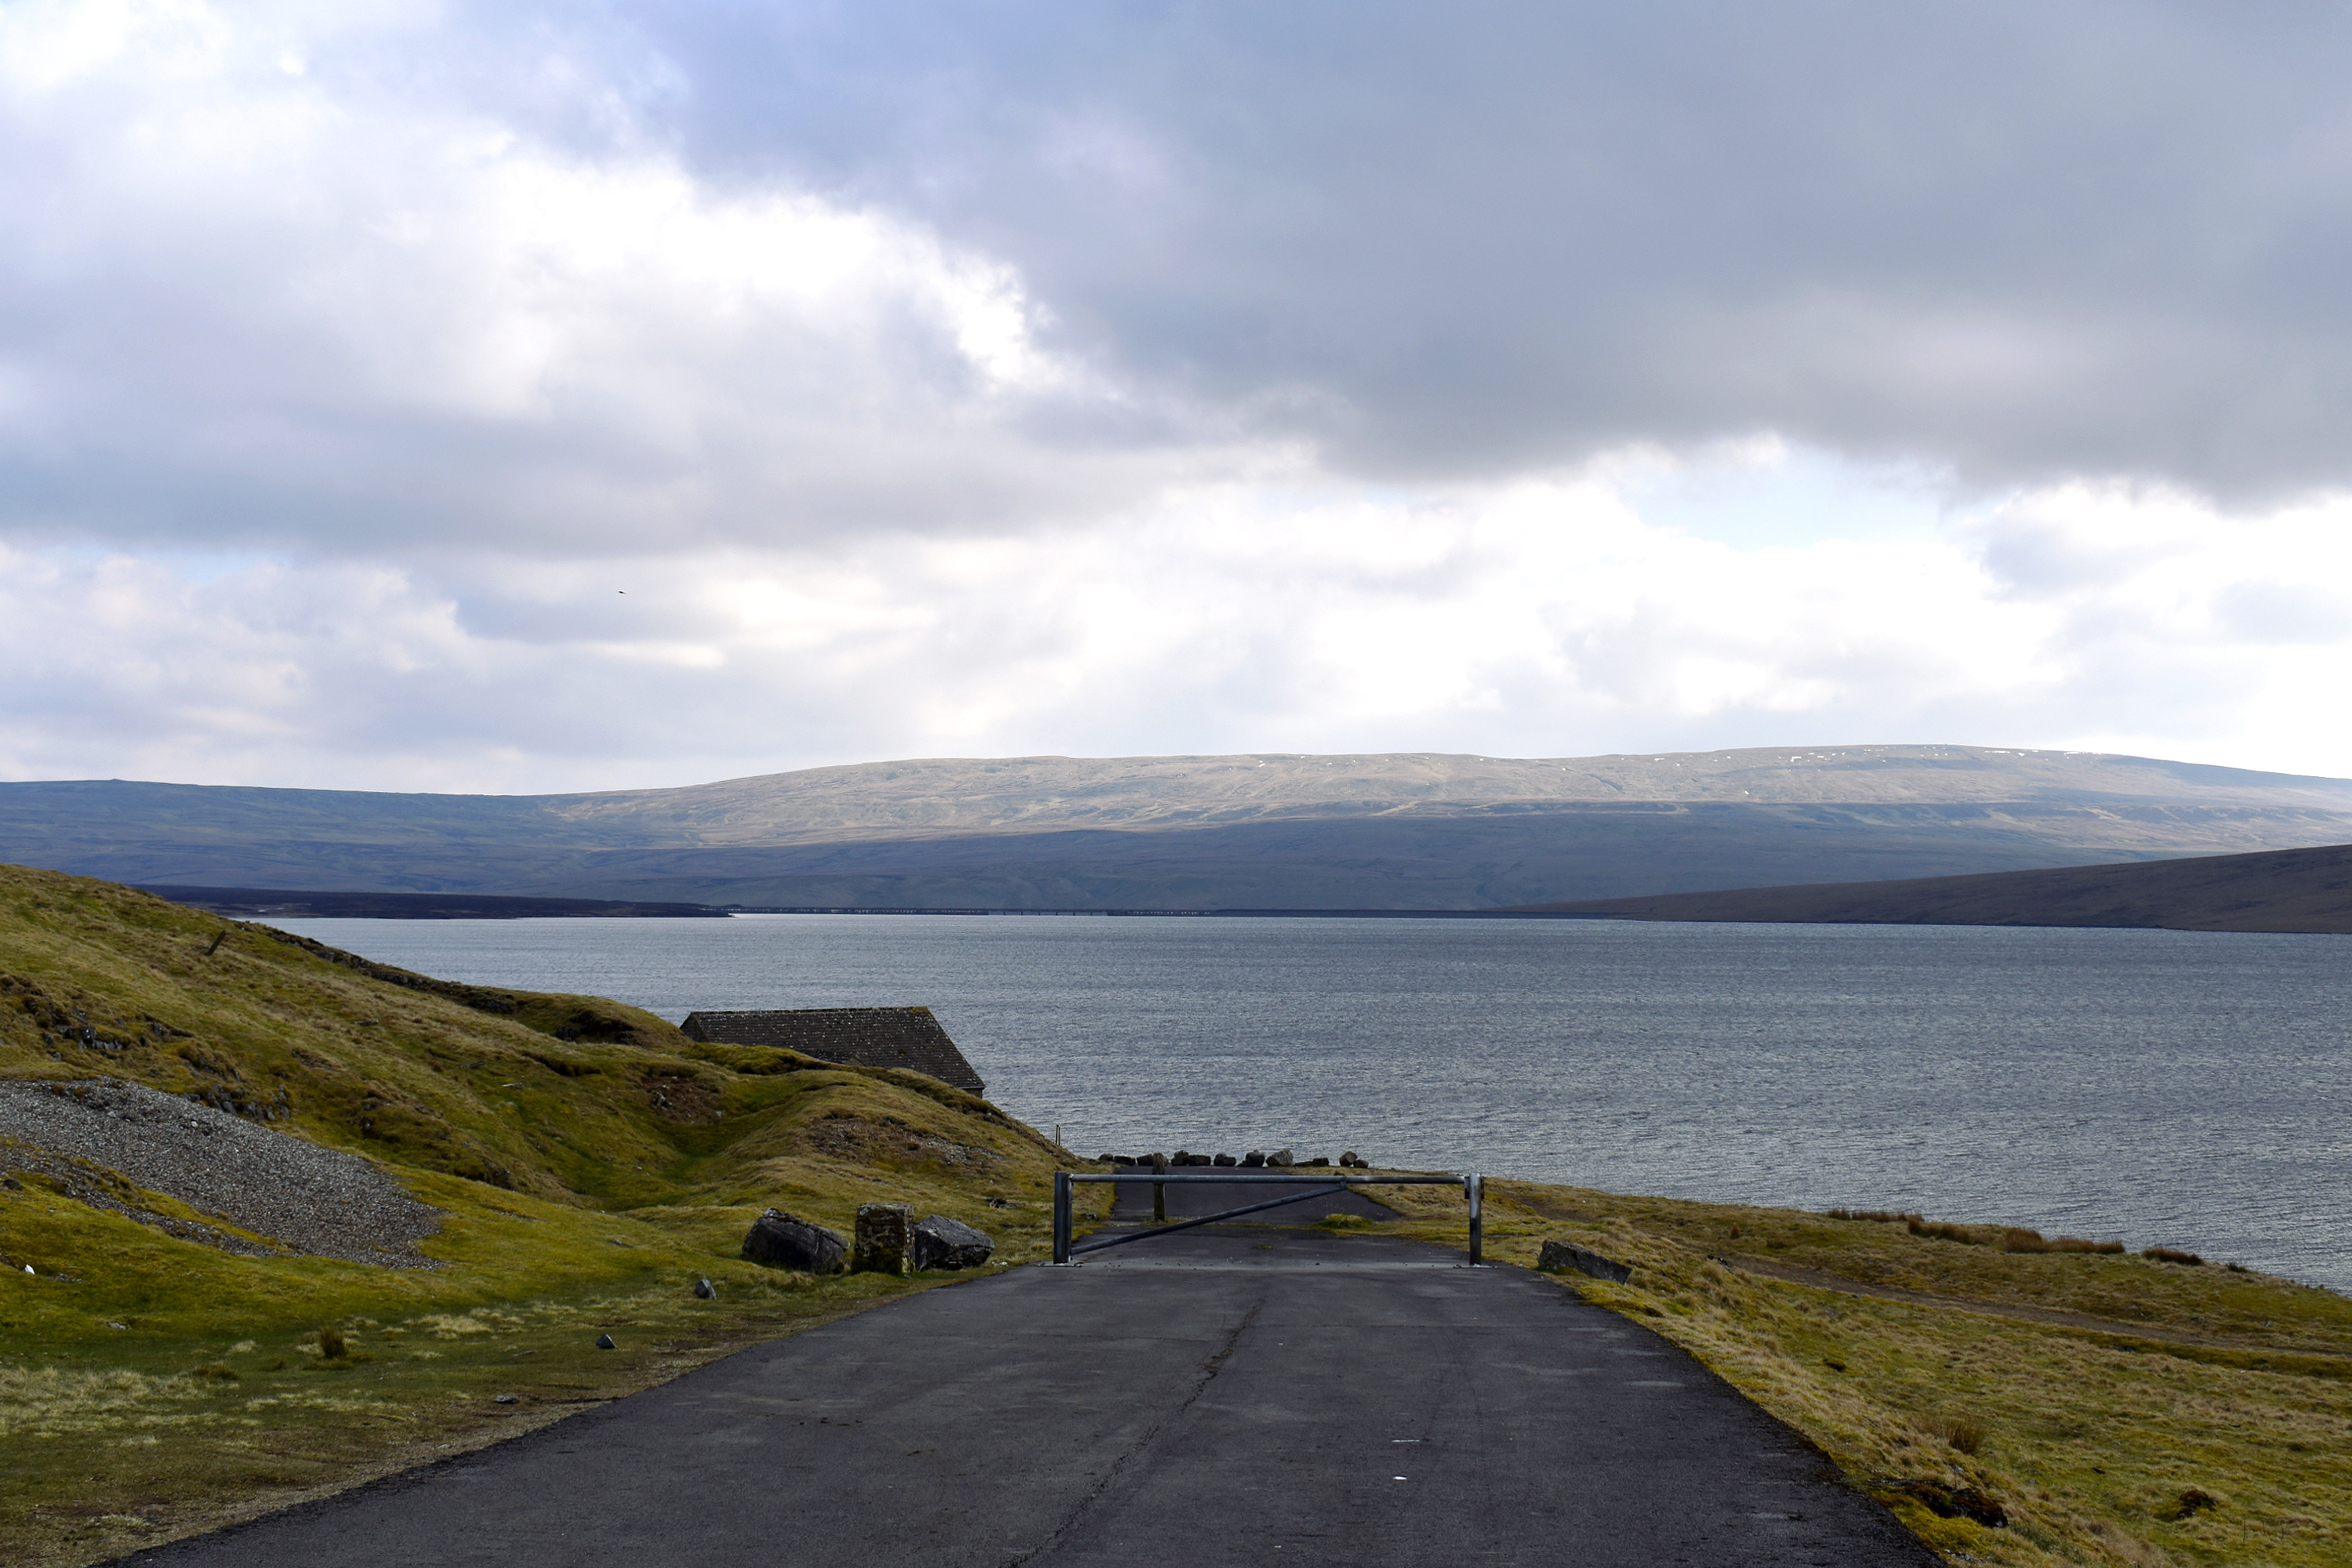 view of reservoir with clouds